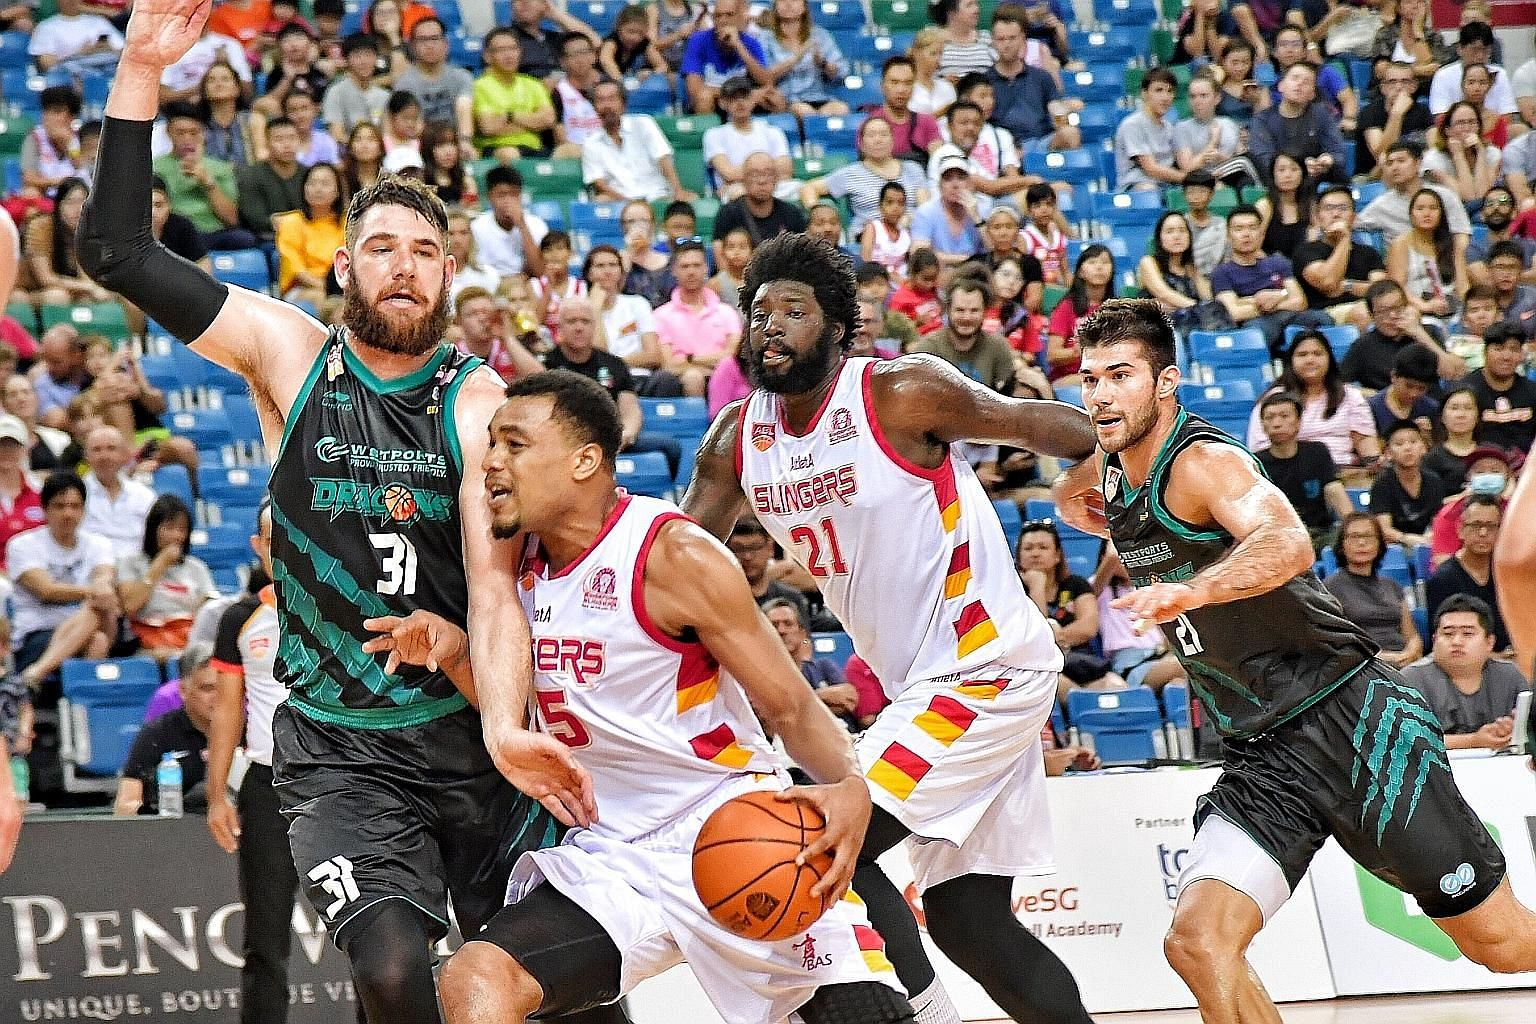 Slingers import players like Xavier Alexander (second from left), Anthony McClain (No. 21) and Jameel McKay (above) will return to the United States at the end of this month following the indefinite suspension of the ABL.